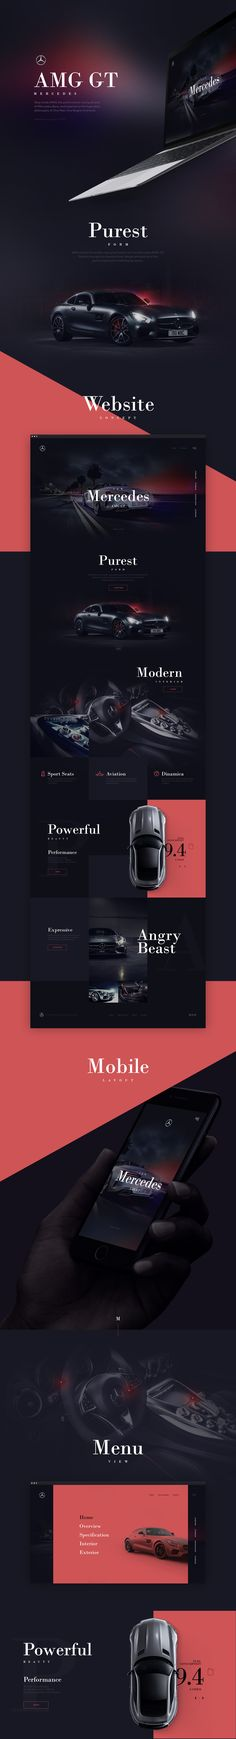 Concept landing page for Mercedes AMG GT.